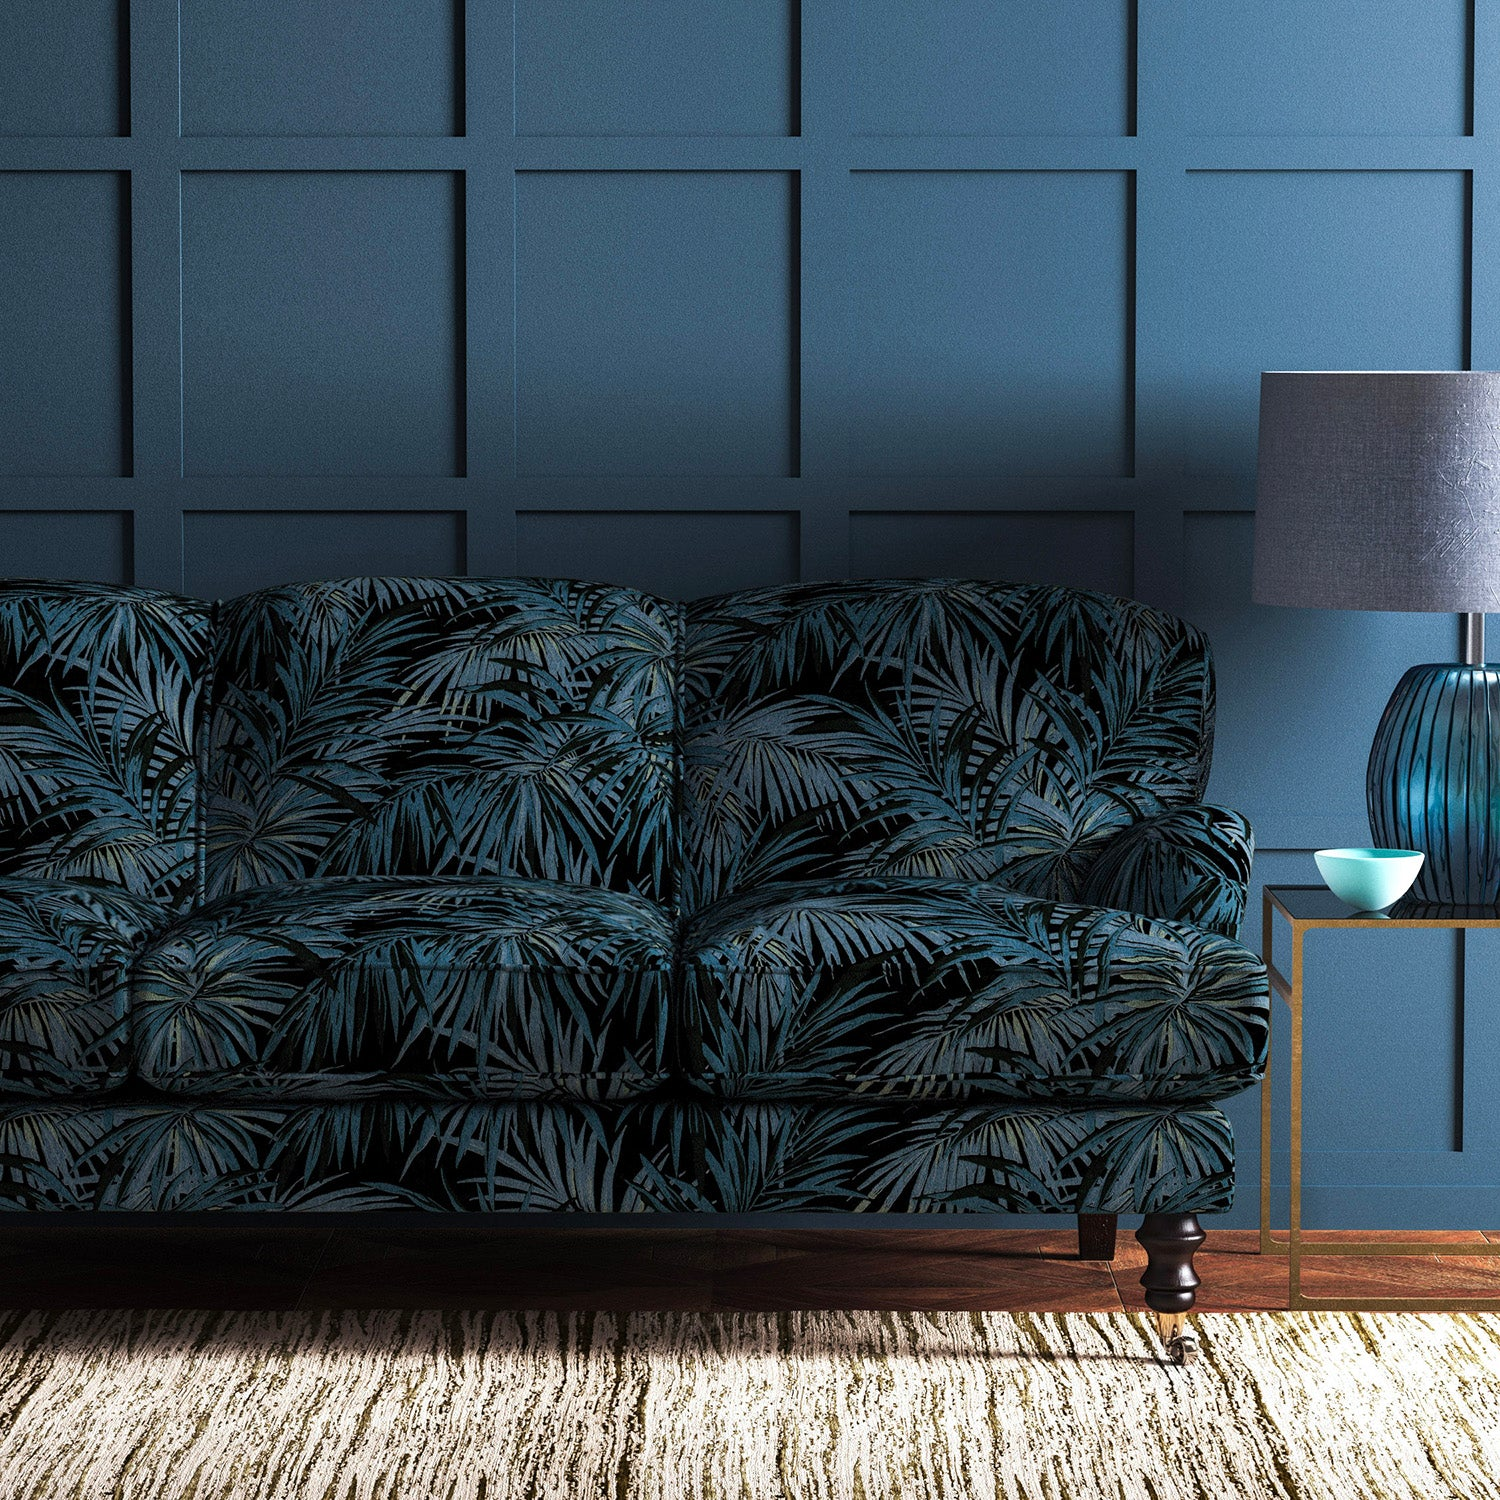 Velvet sofa upholstered in an smokey blue velvet upholstery fabric with palm design and stain resistant finish